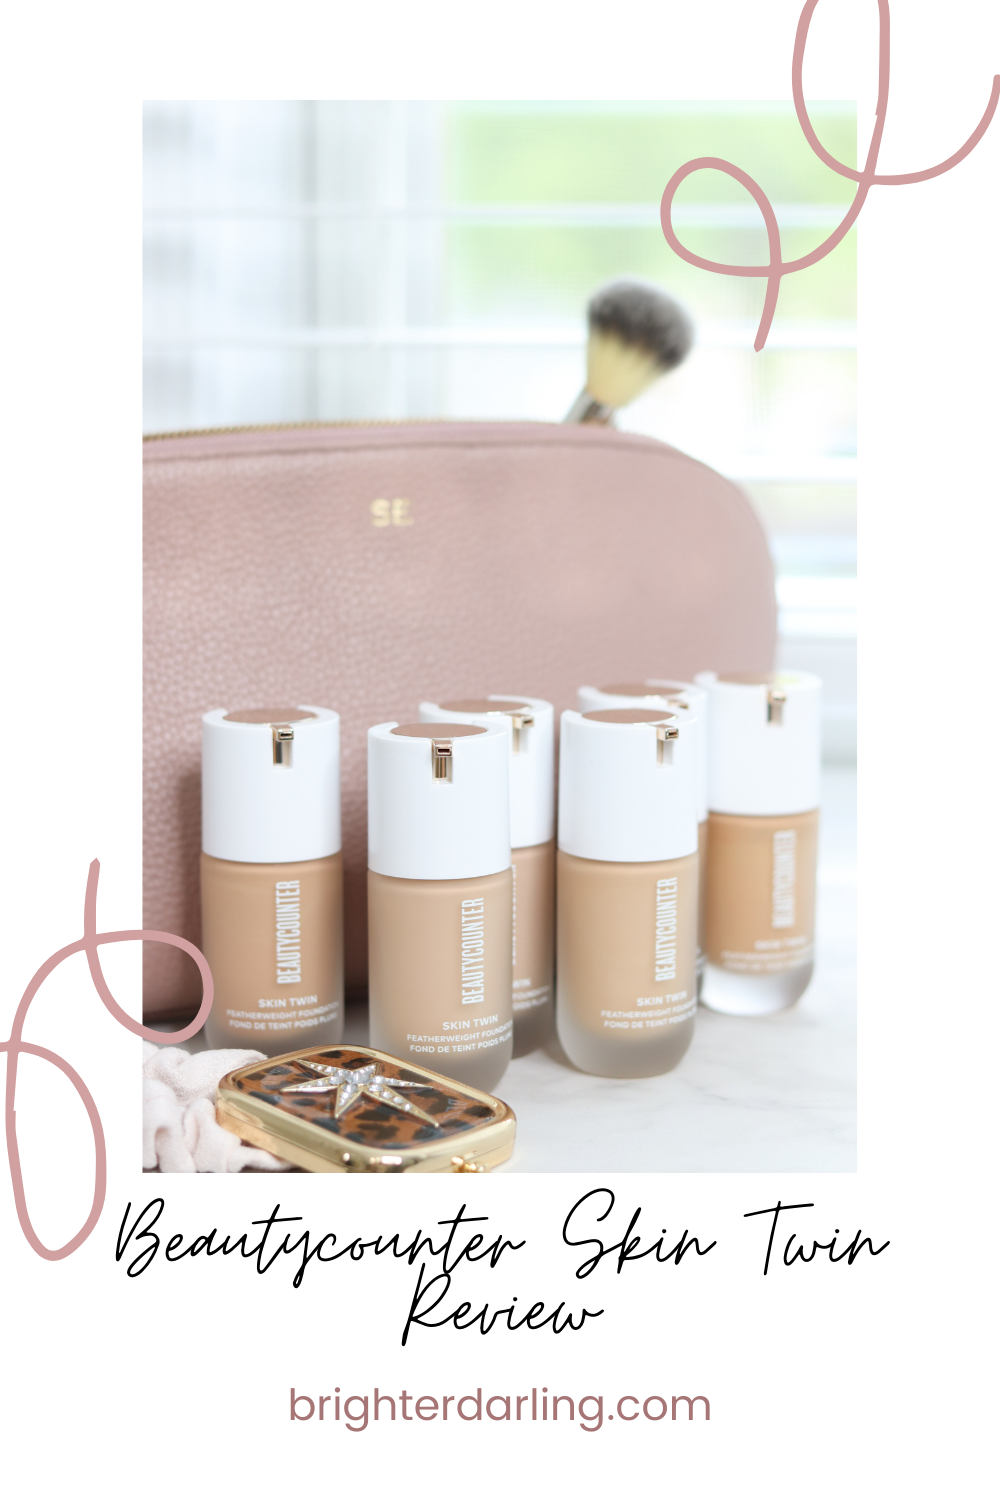 Beautycounter Skin Twin Review and Wear Test Demo